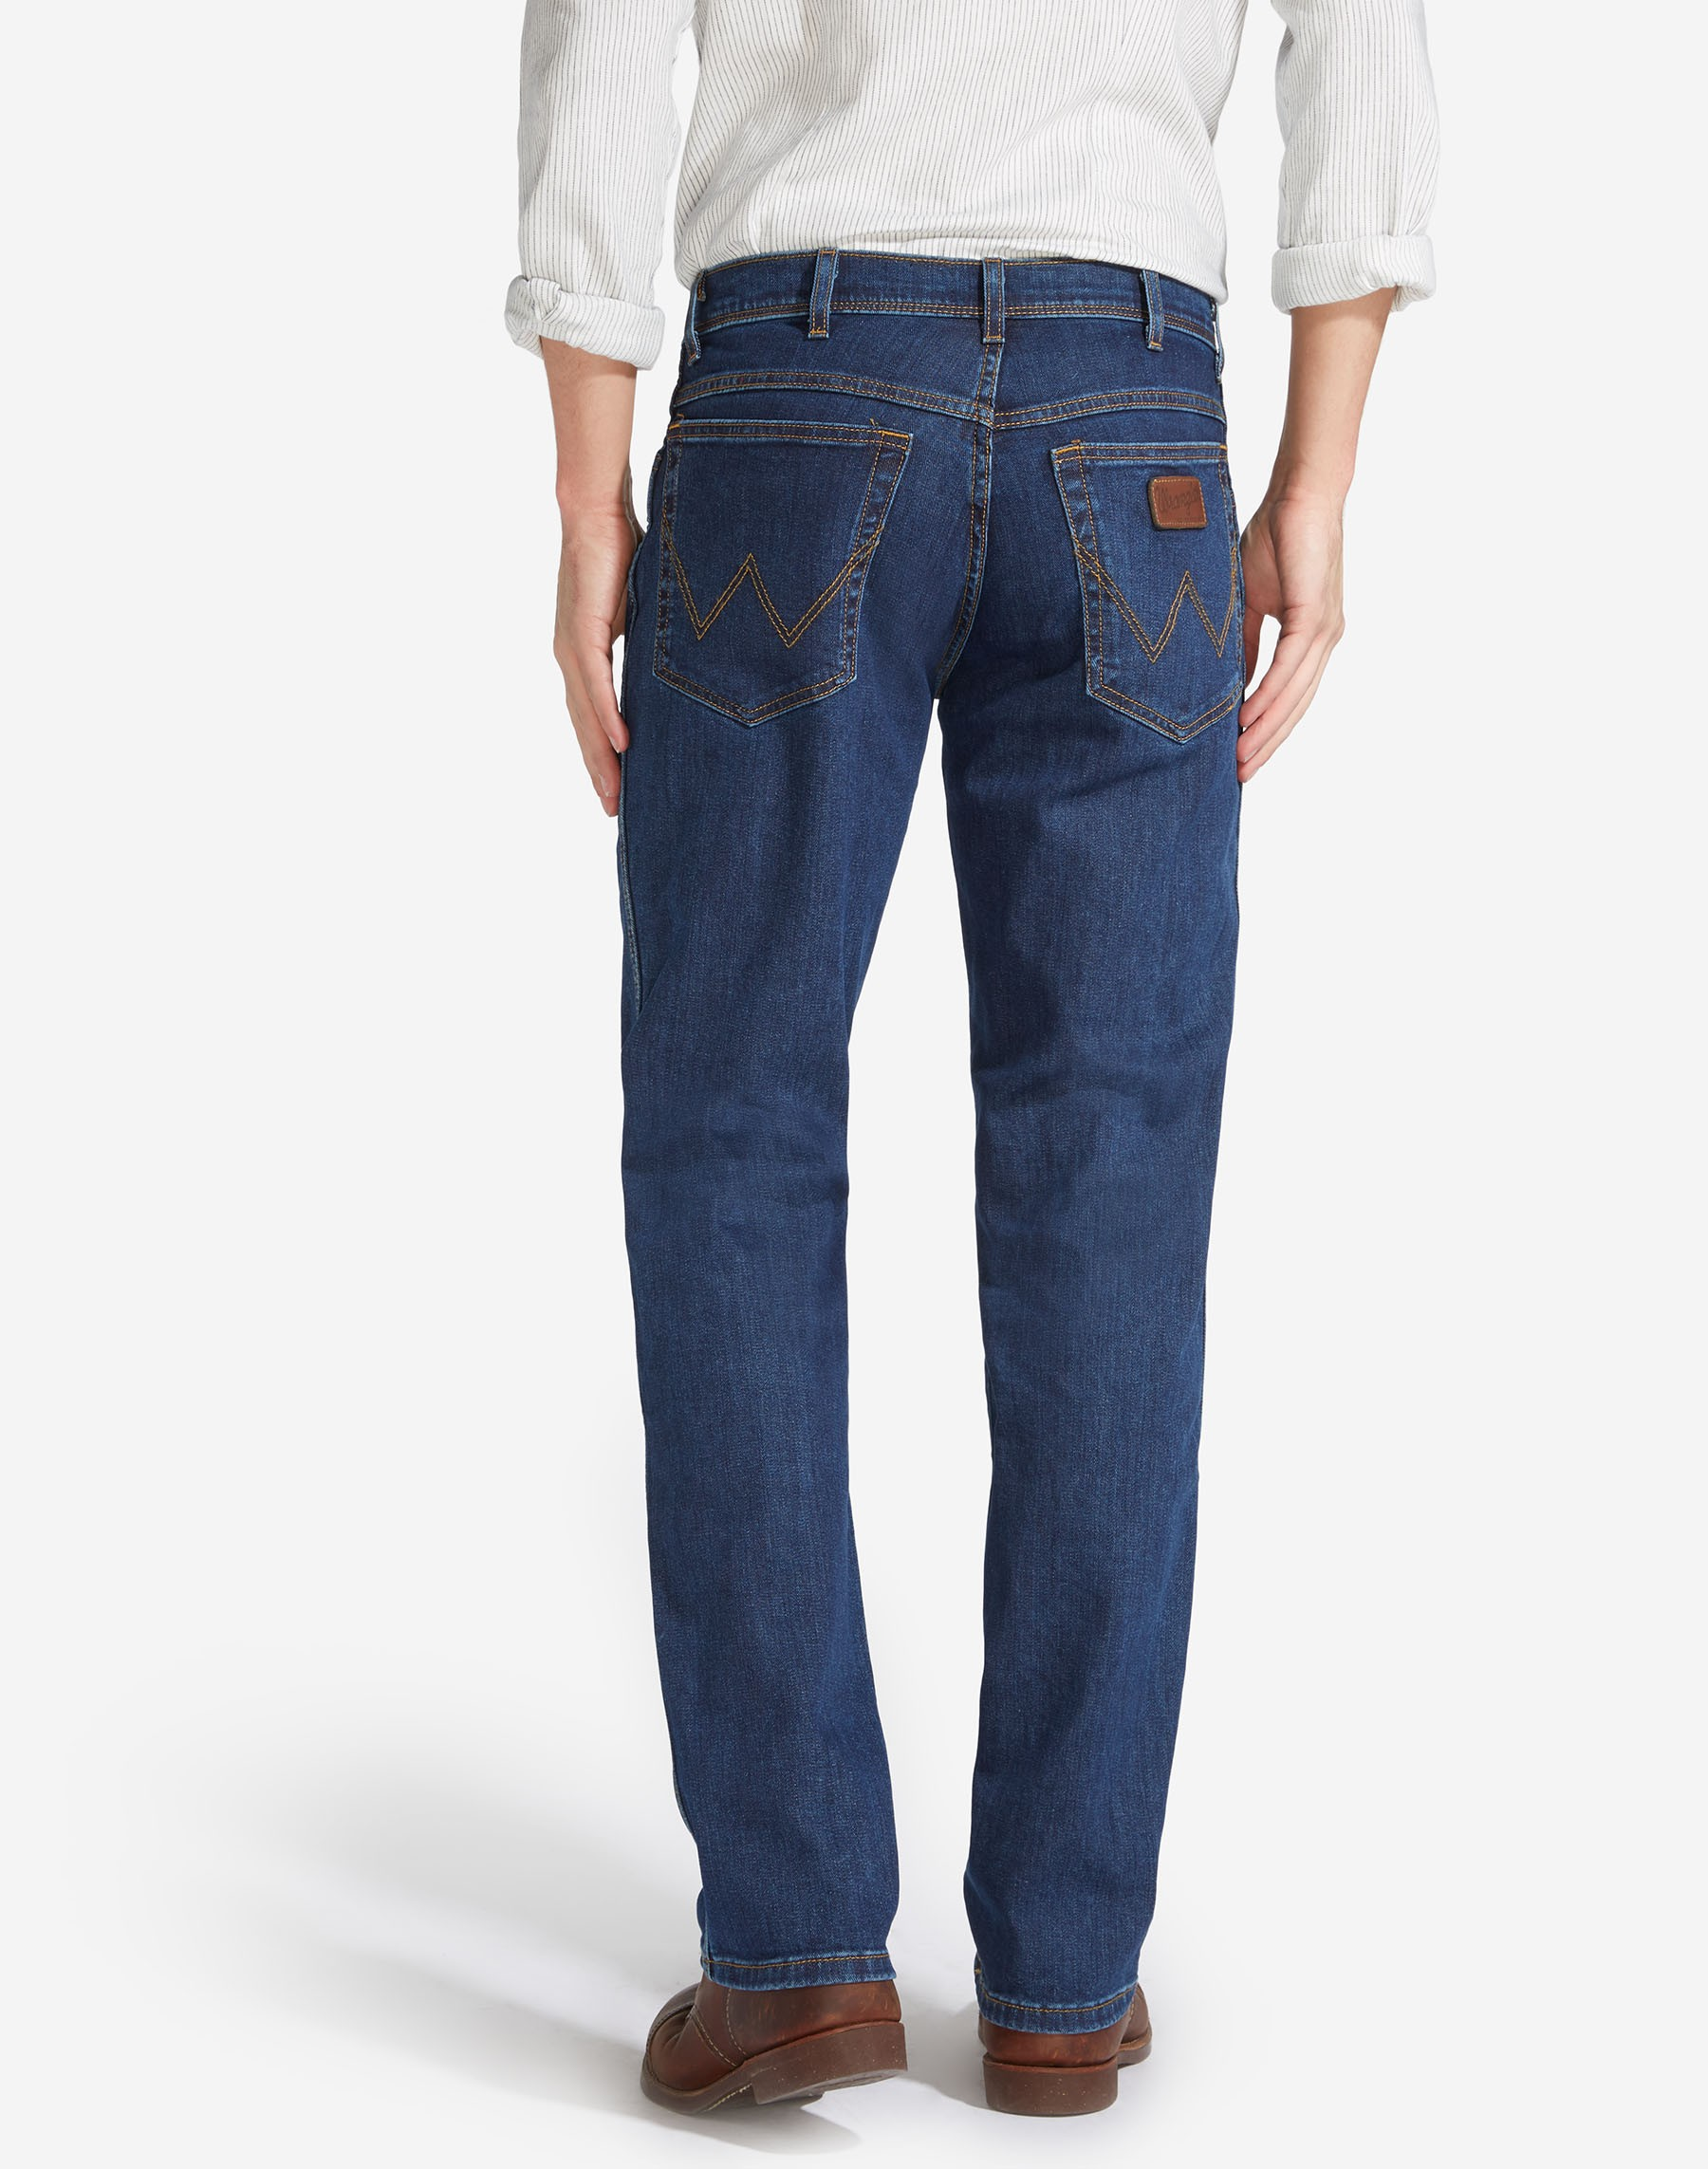 Mens-Wrangler-039-Texas-039-Jeans-Denim-Stretch-Original-Straight-Fit thumbnail 11